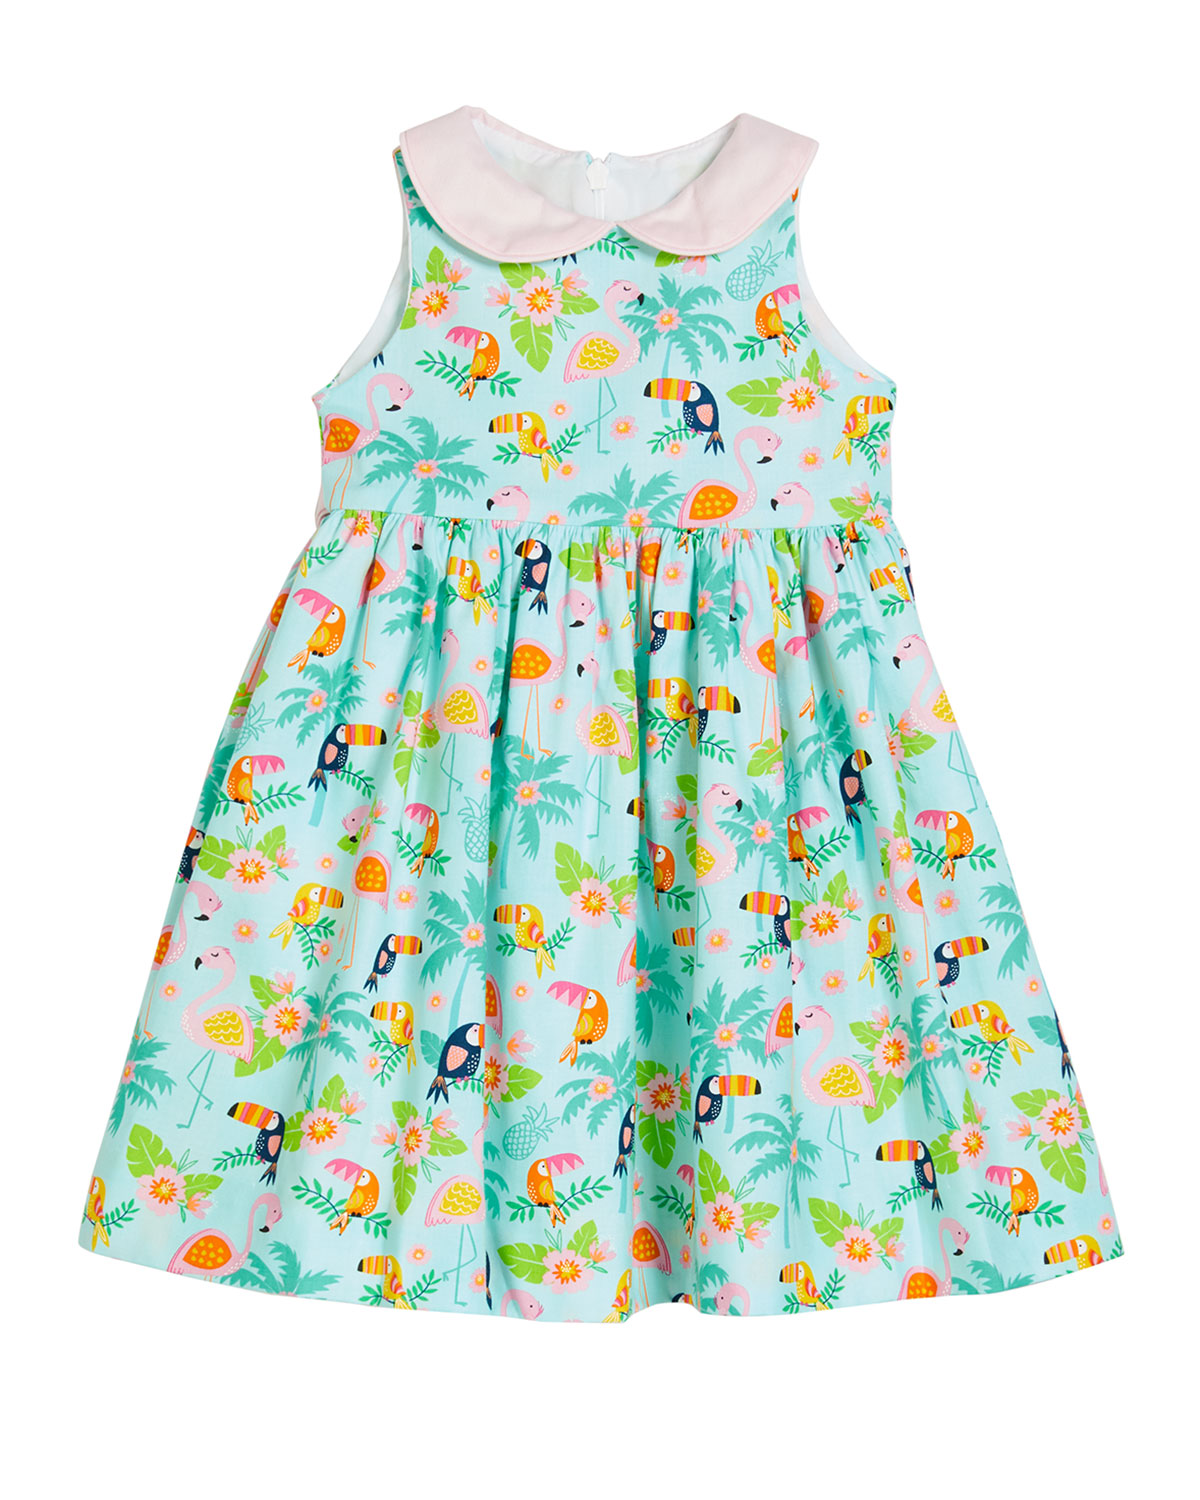 Susanne Lively Girl's Flamingo Dress with Collar, Size 12 Months-3